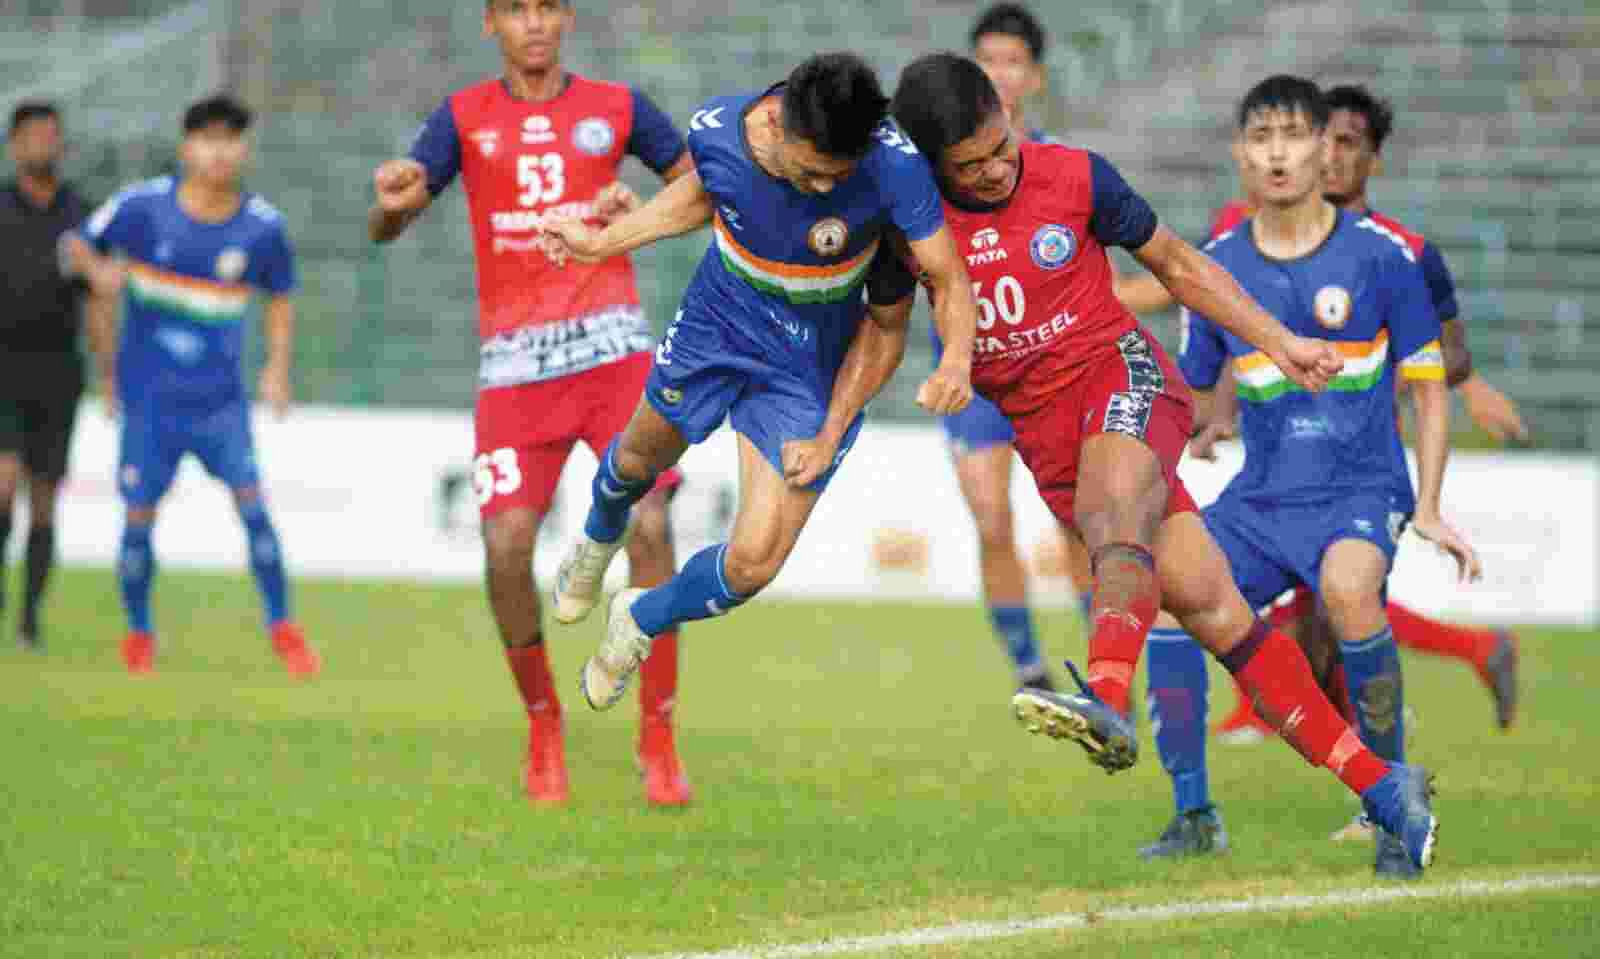 Durand Cup: Bengaluru United and Jamshedpur FC register win in opening match